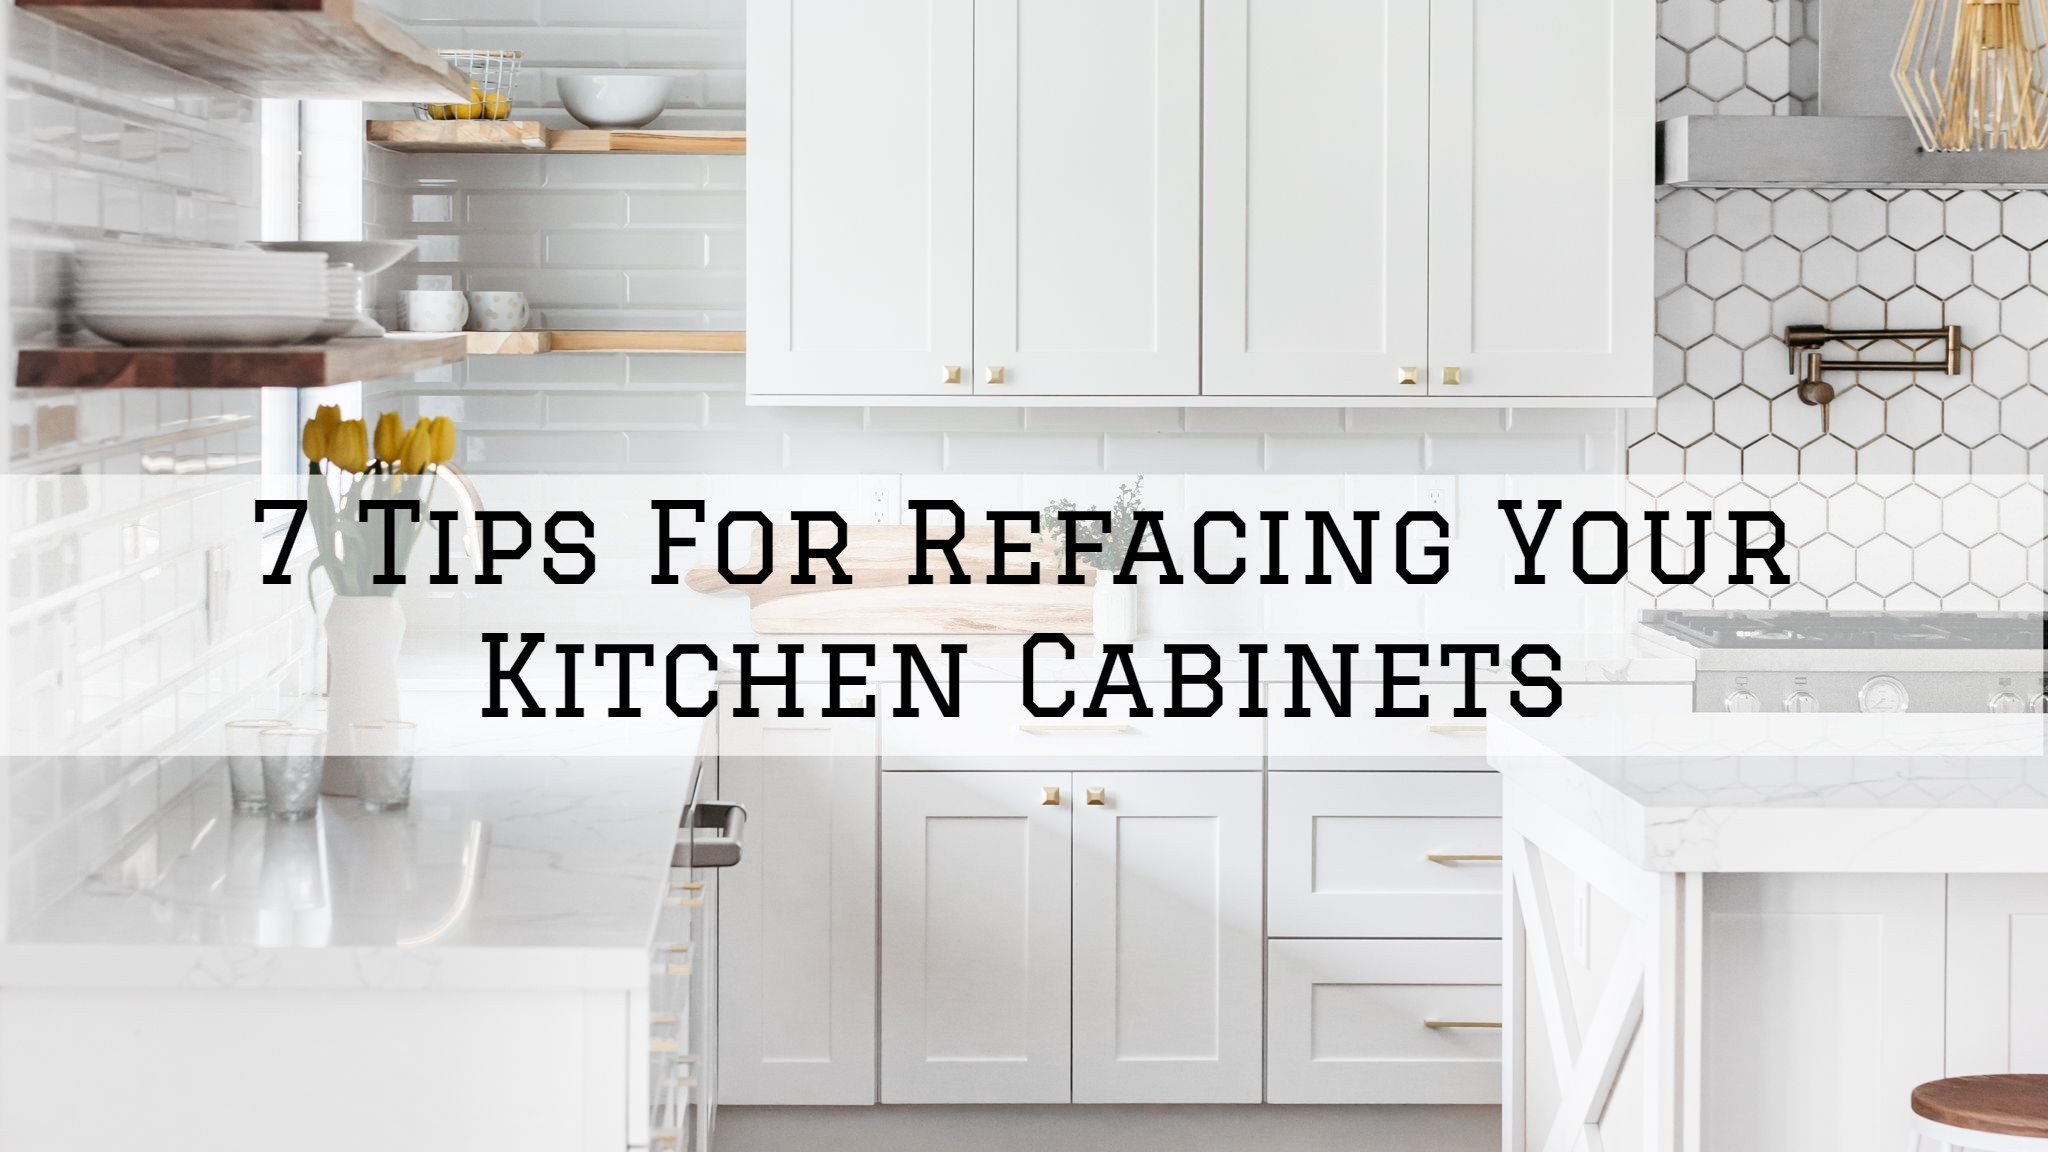 14-07-2021 Steves Quality Painting And Washing Green Lake WI tips for refacing your kitchen cabinets